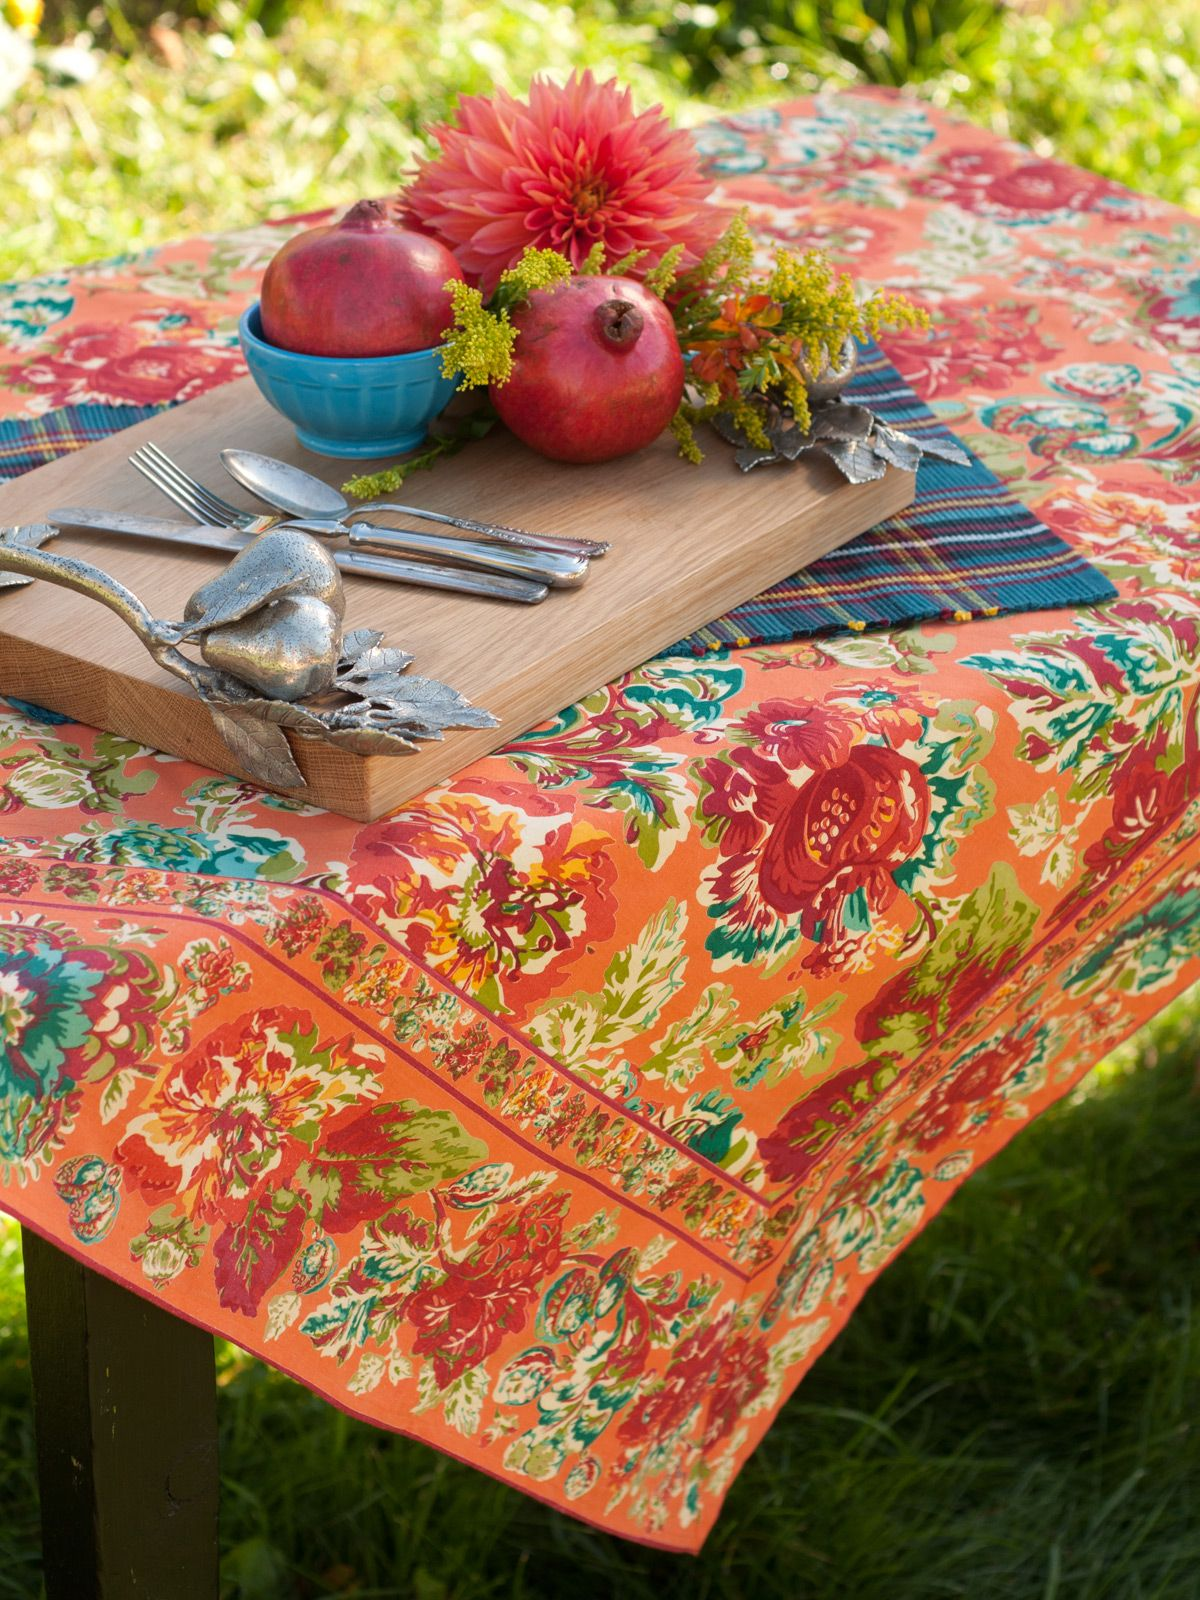 Pomegranate Tablecloth | Table Linens U0026 Kitchen, Tablecloths. Http://www.